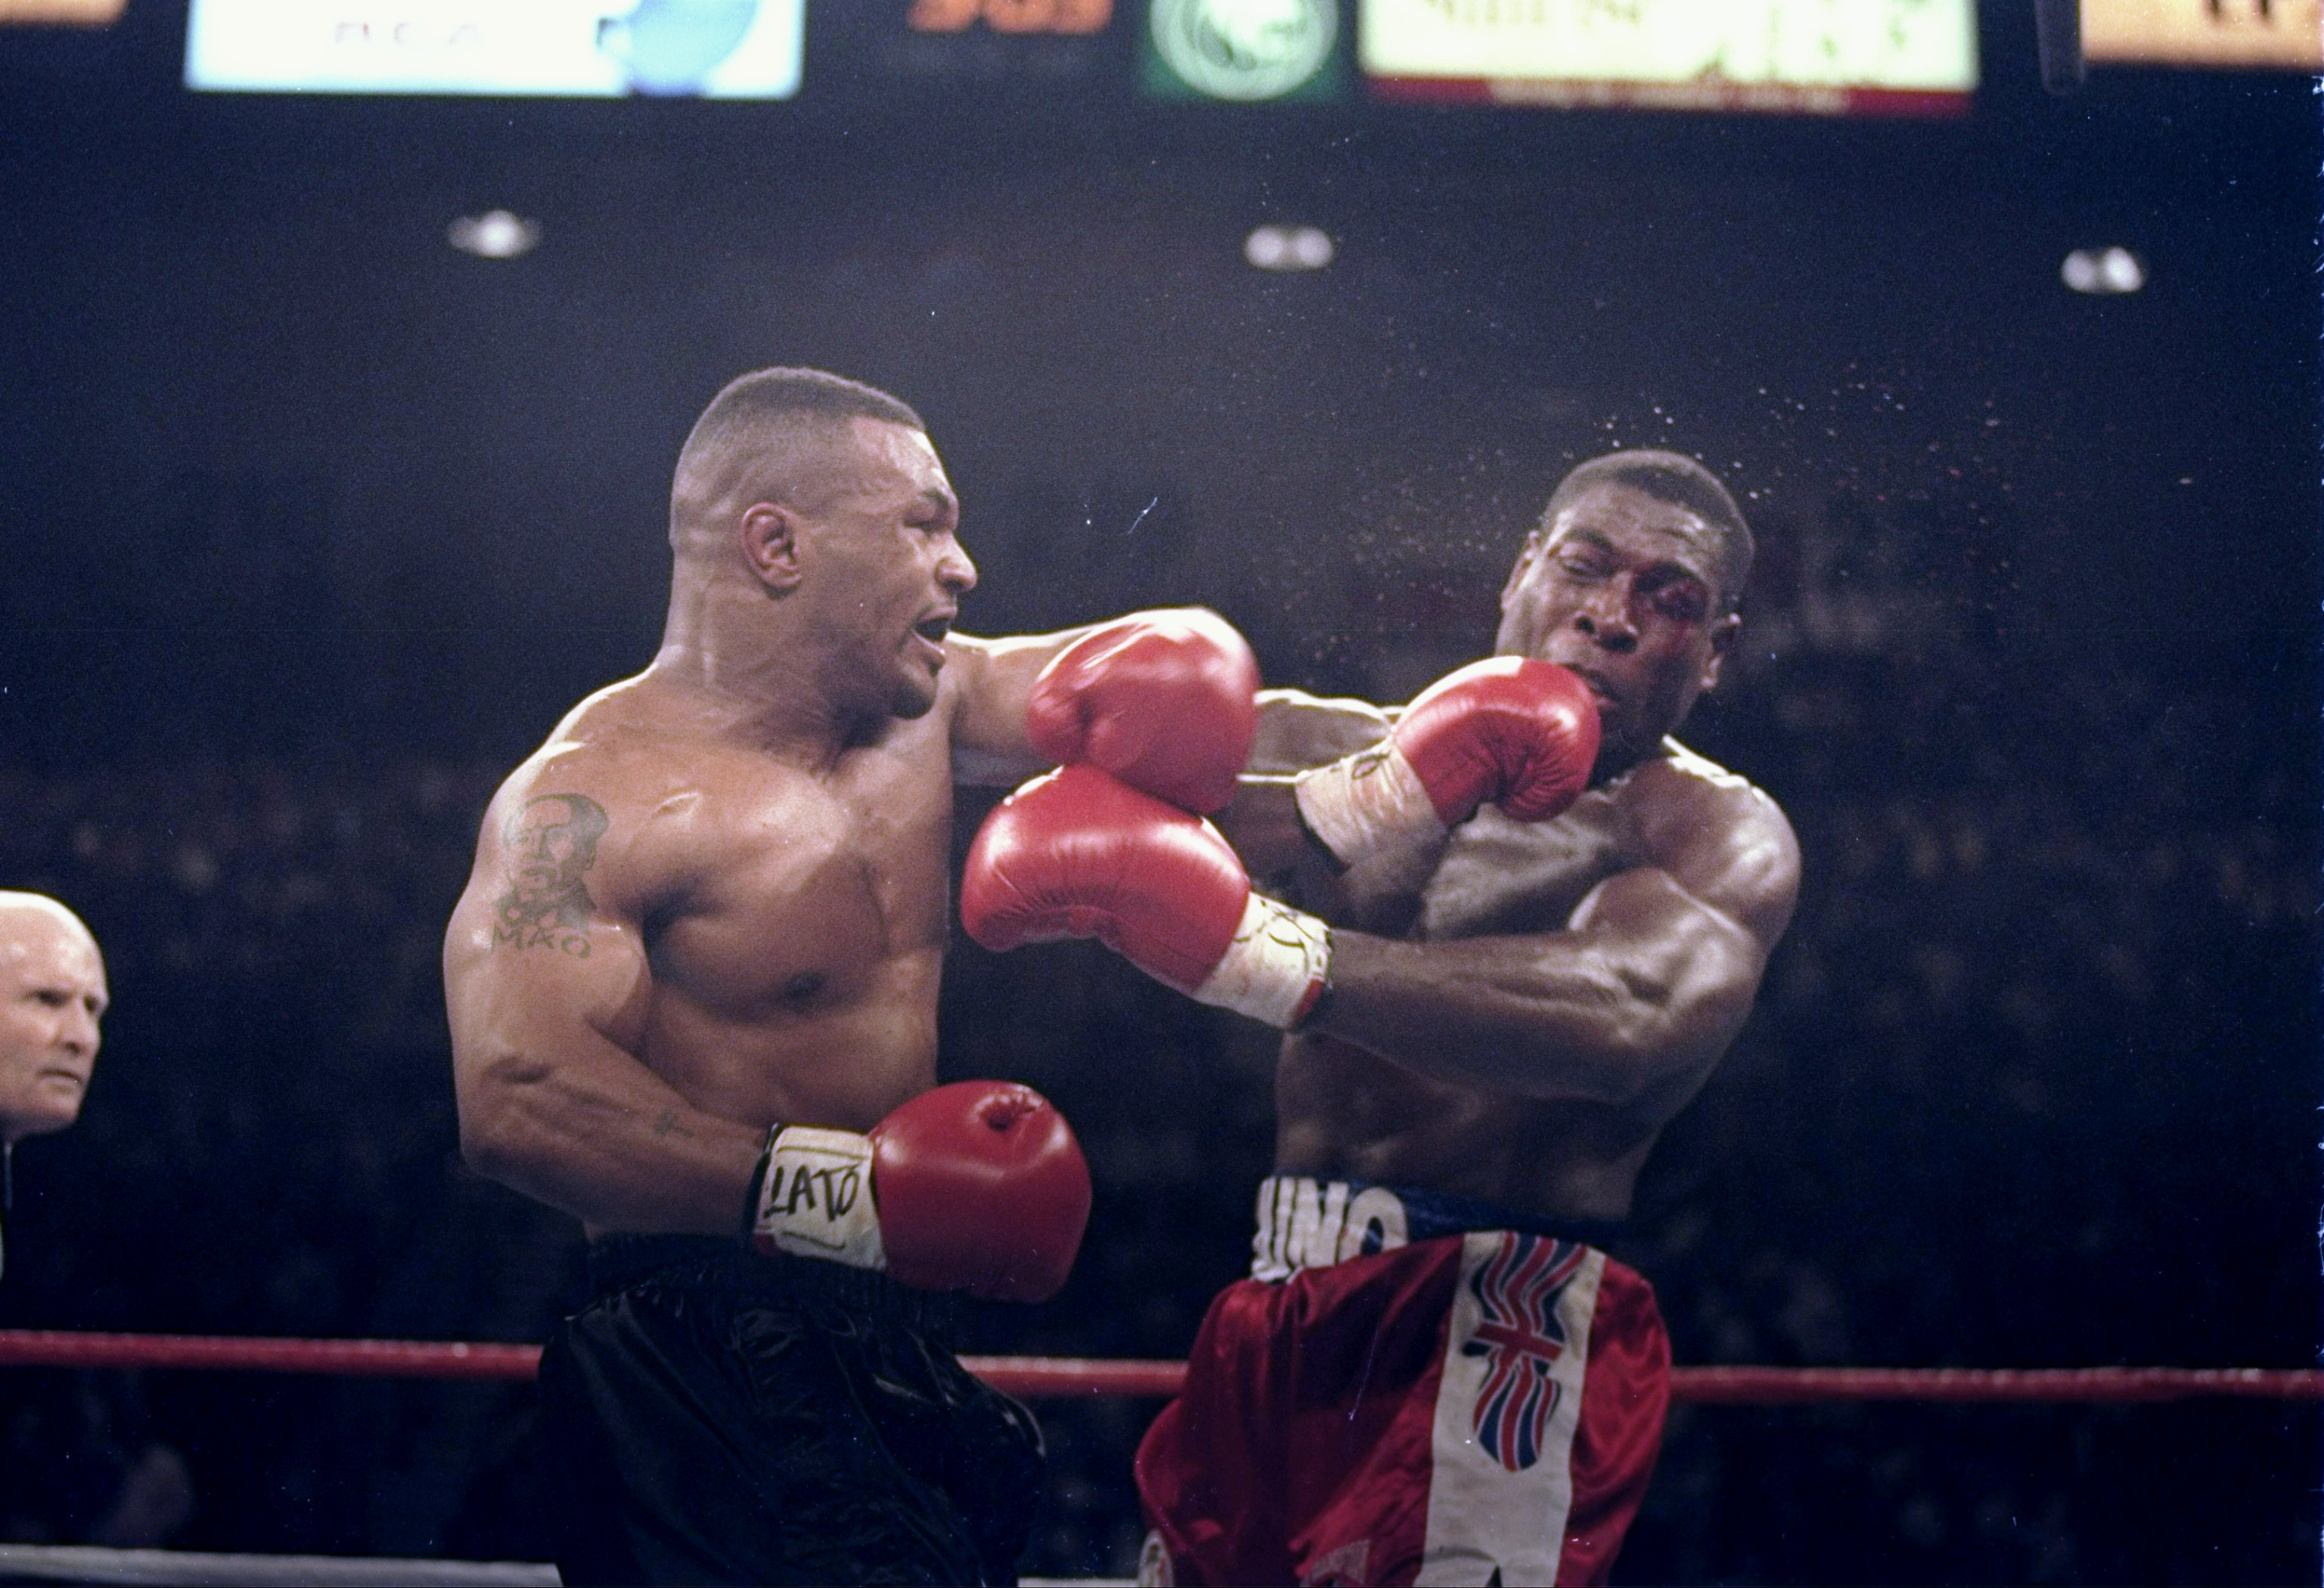 MIKE TYSON MICHAEL SPINKS FIGHT 1988  91 SECONDS ORIGINAL 8 X 10 PHOTO  2